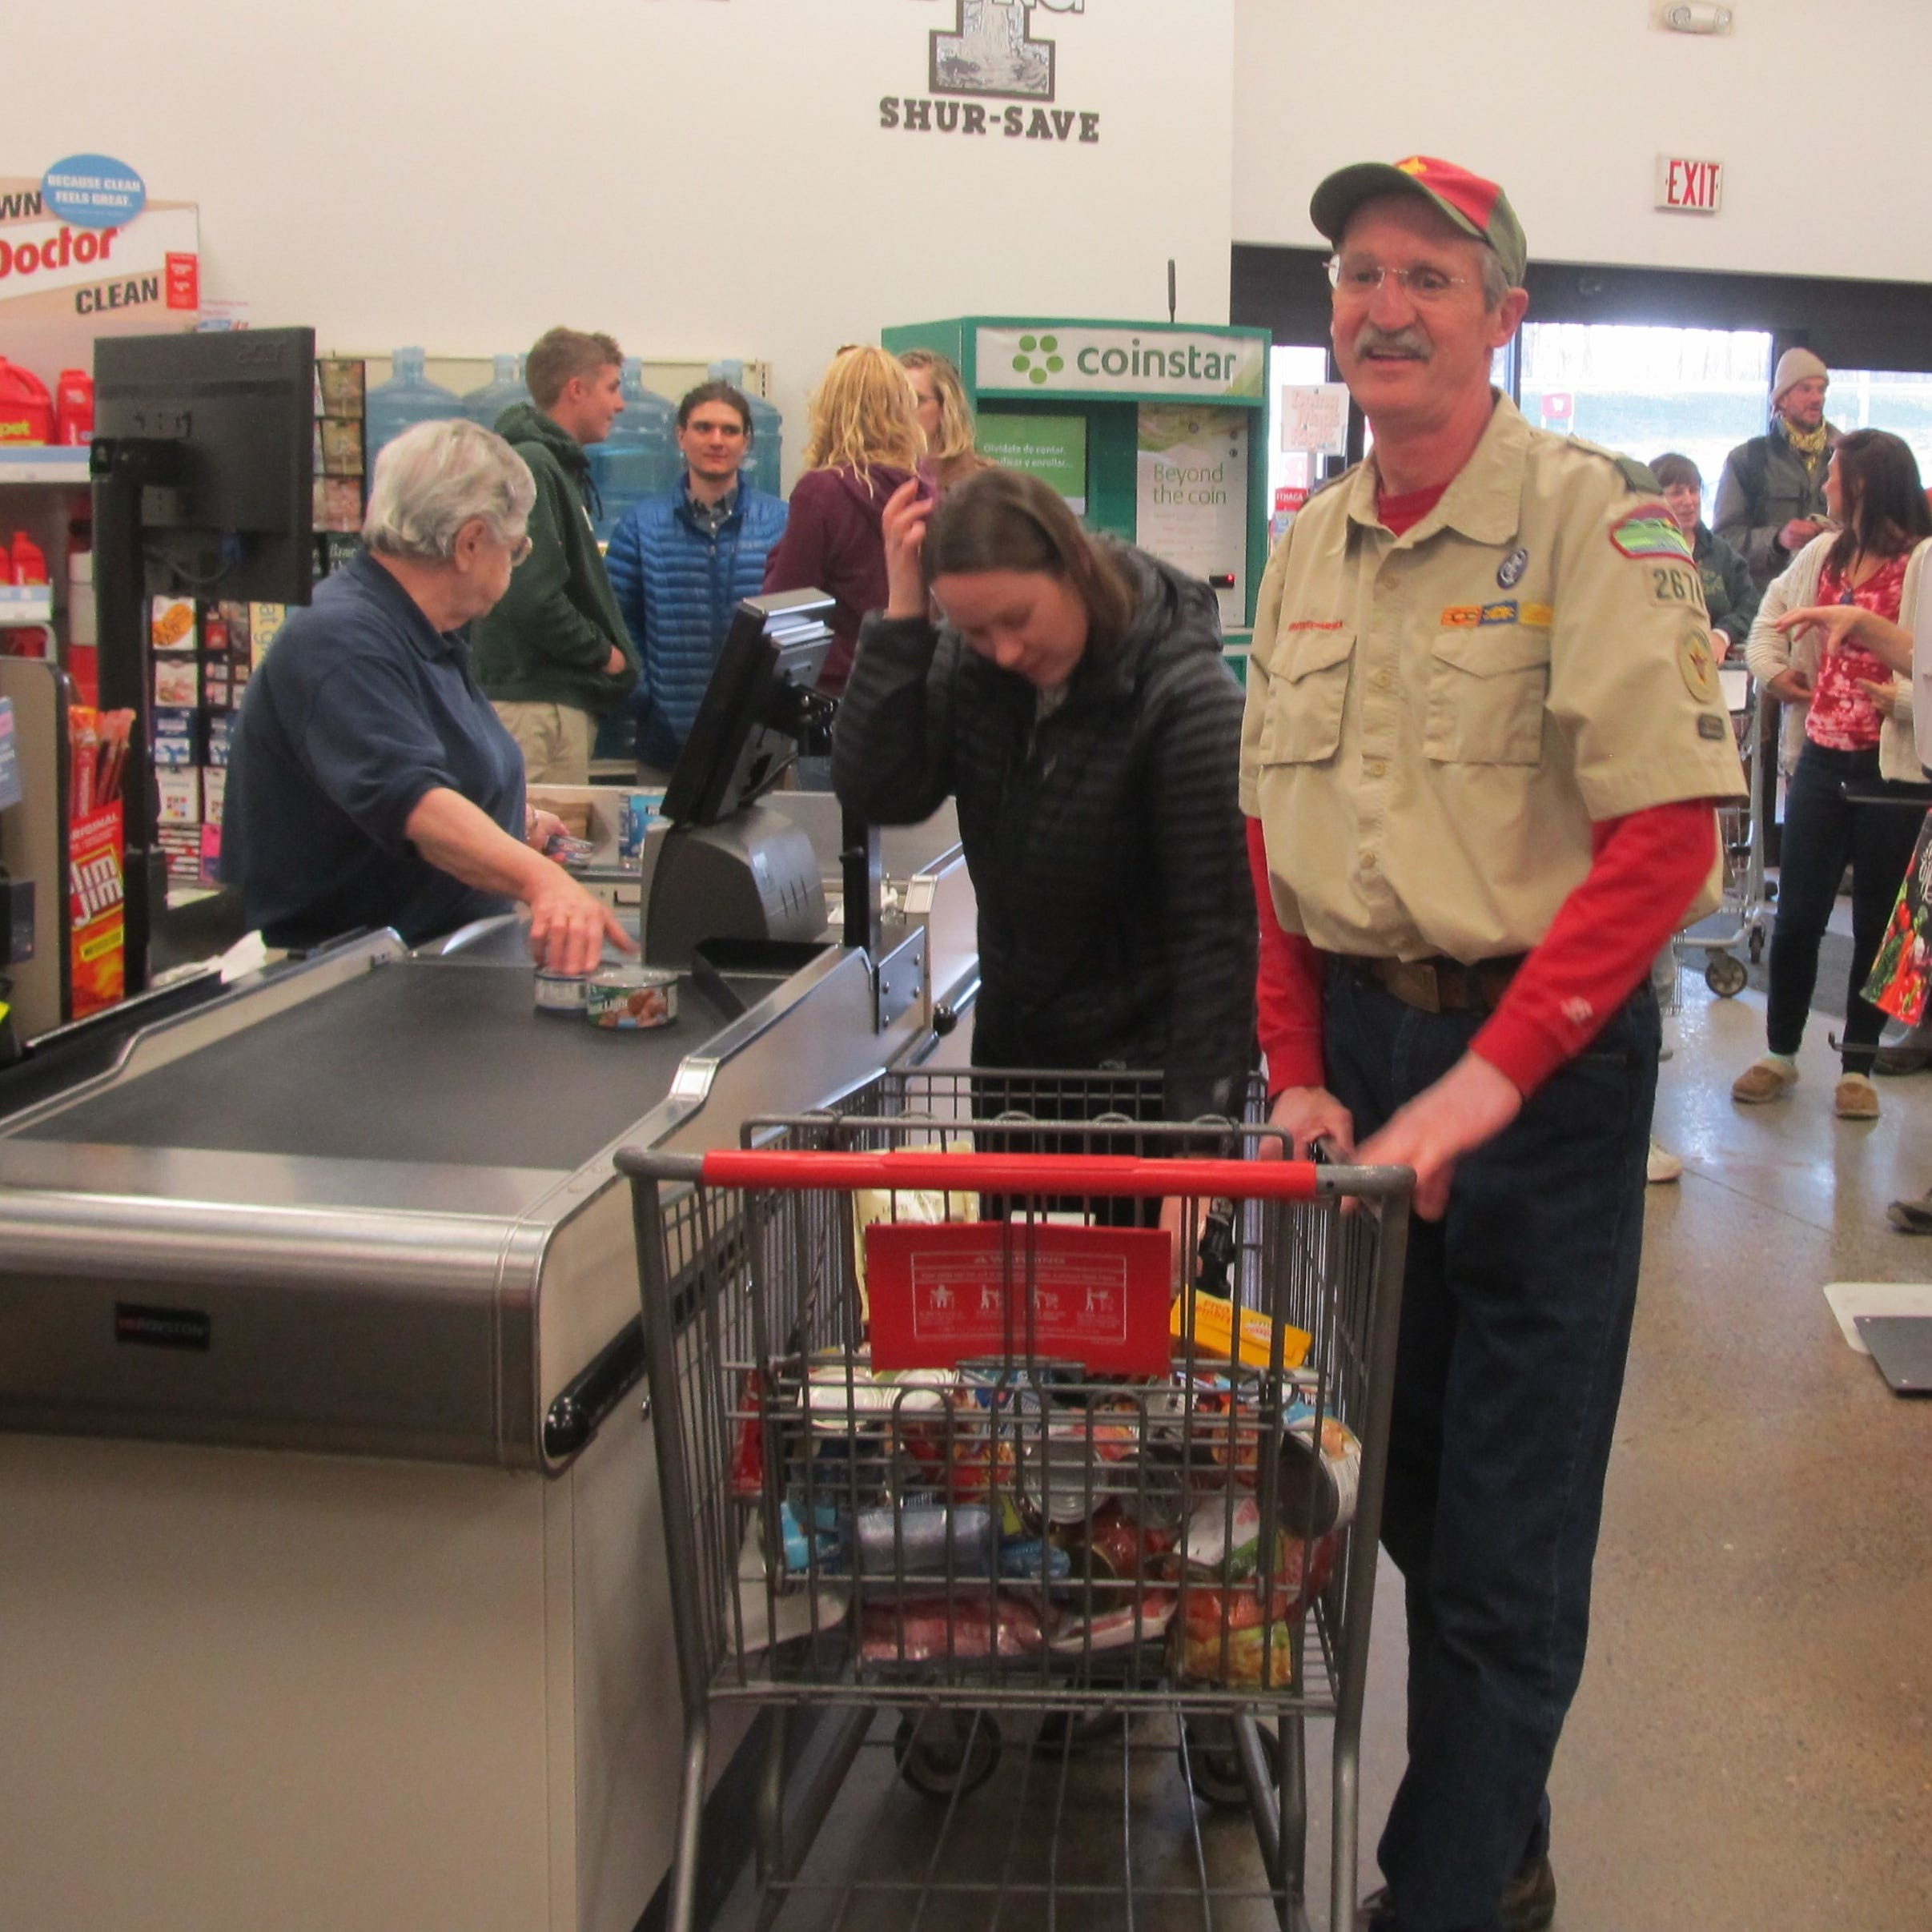 Seneca South: Schuyler County Boy Scout leader wins grocery shopping spree raffle